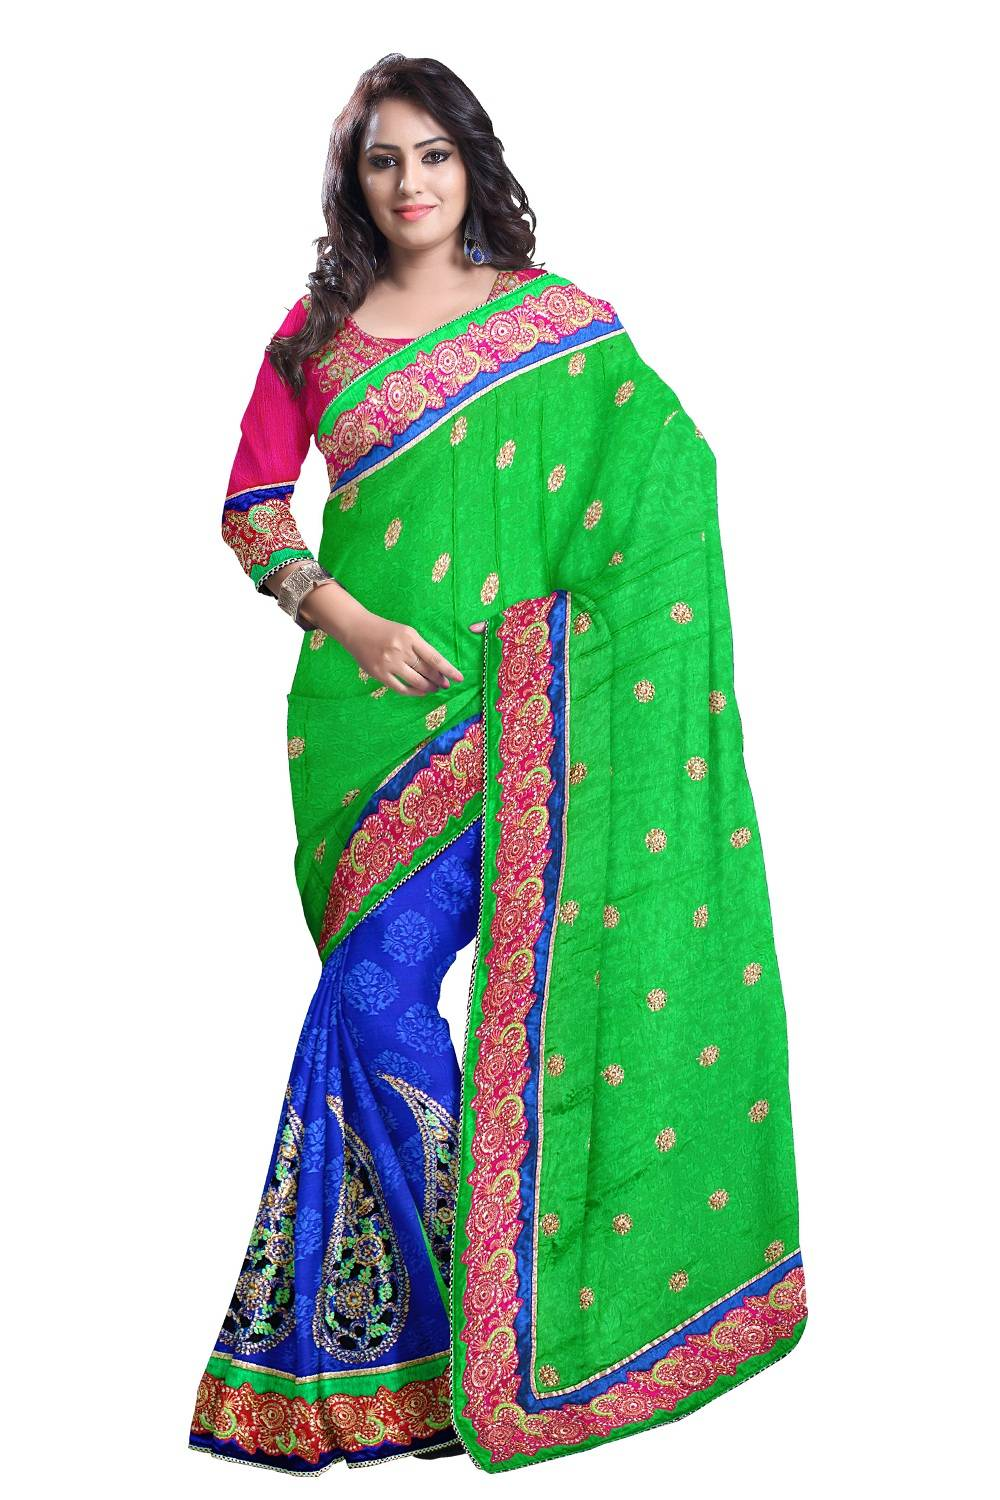 Embroidered Faux Georgette Saree (Sari) in Blue